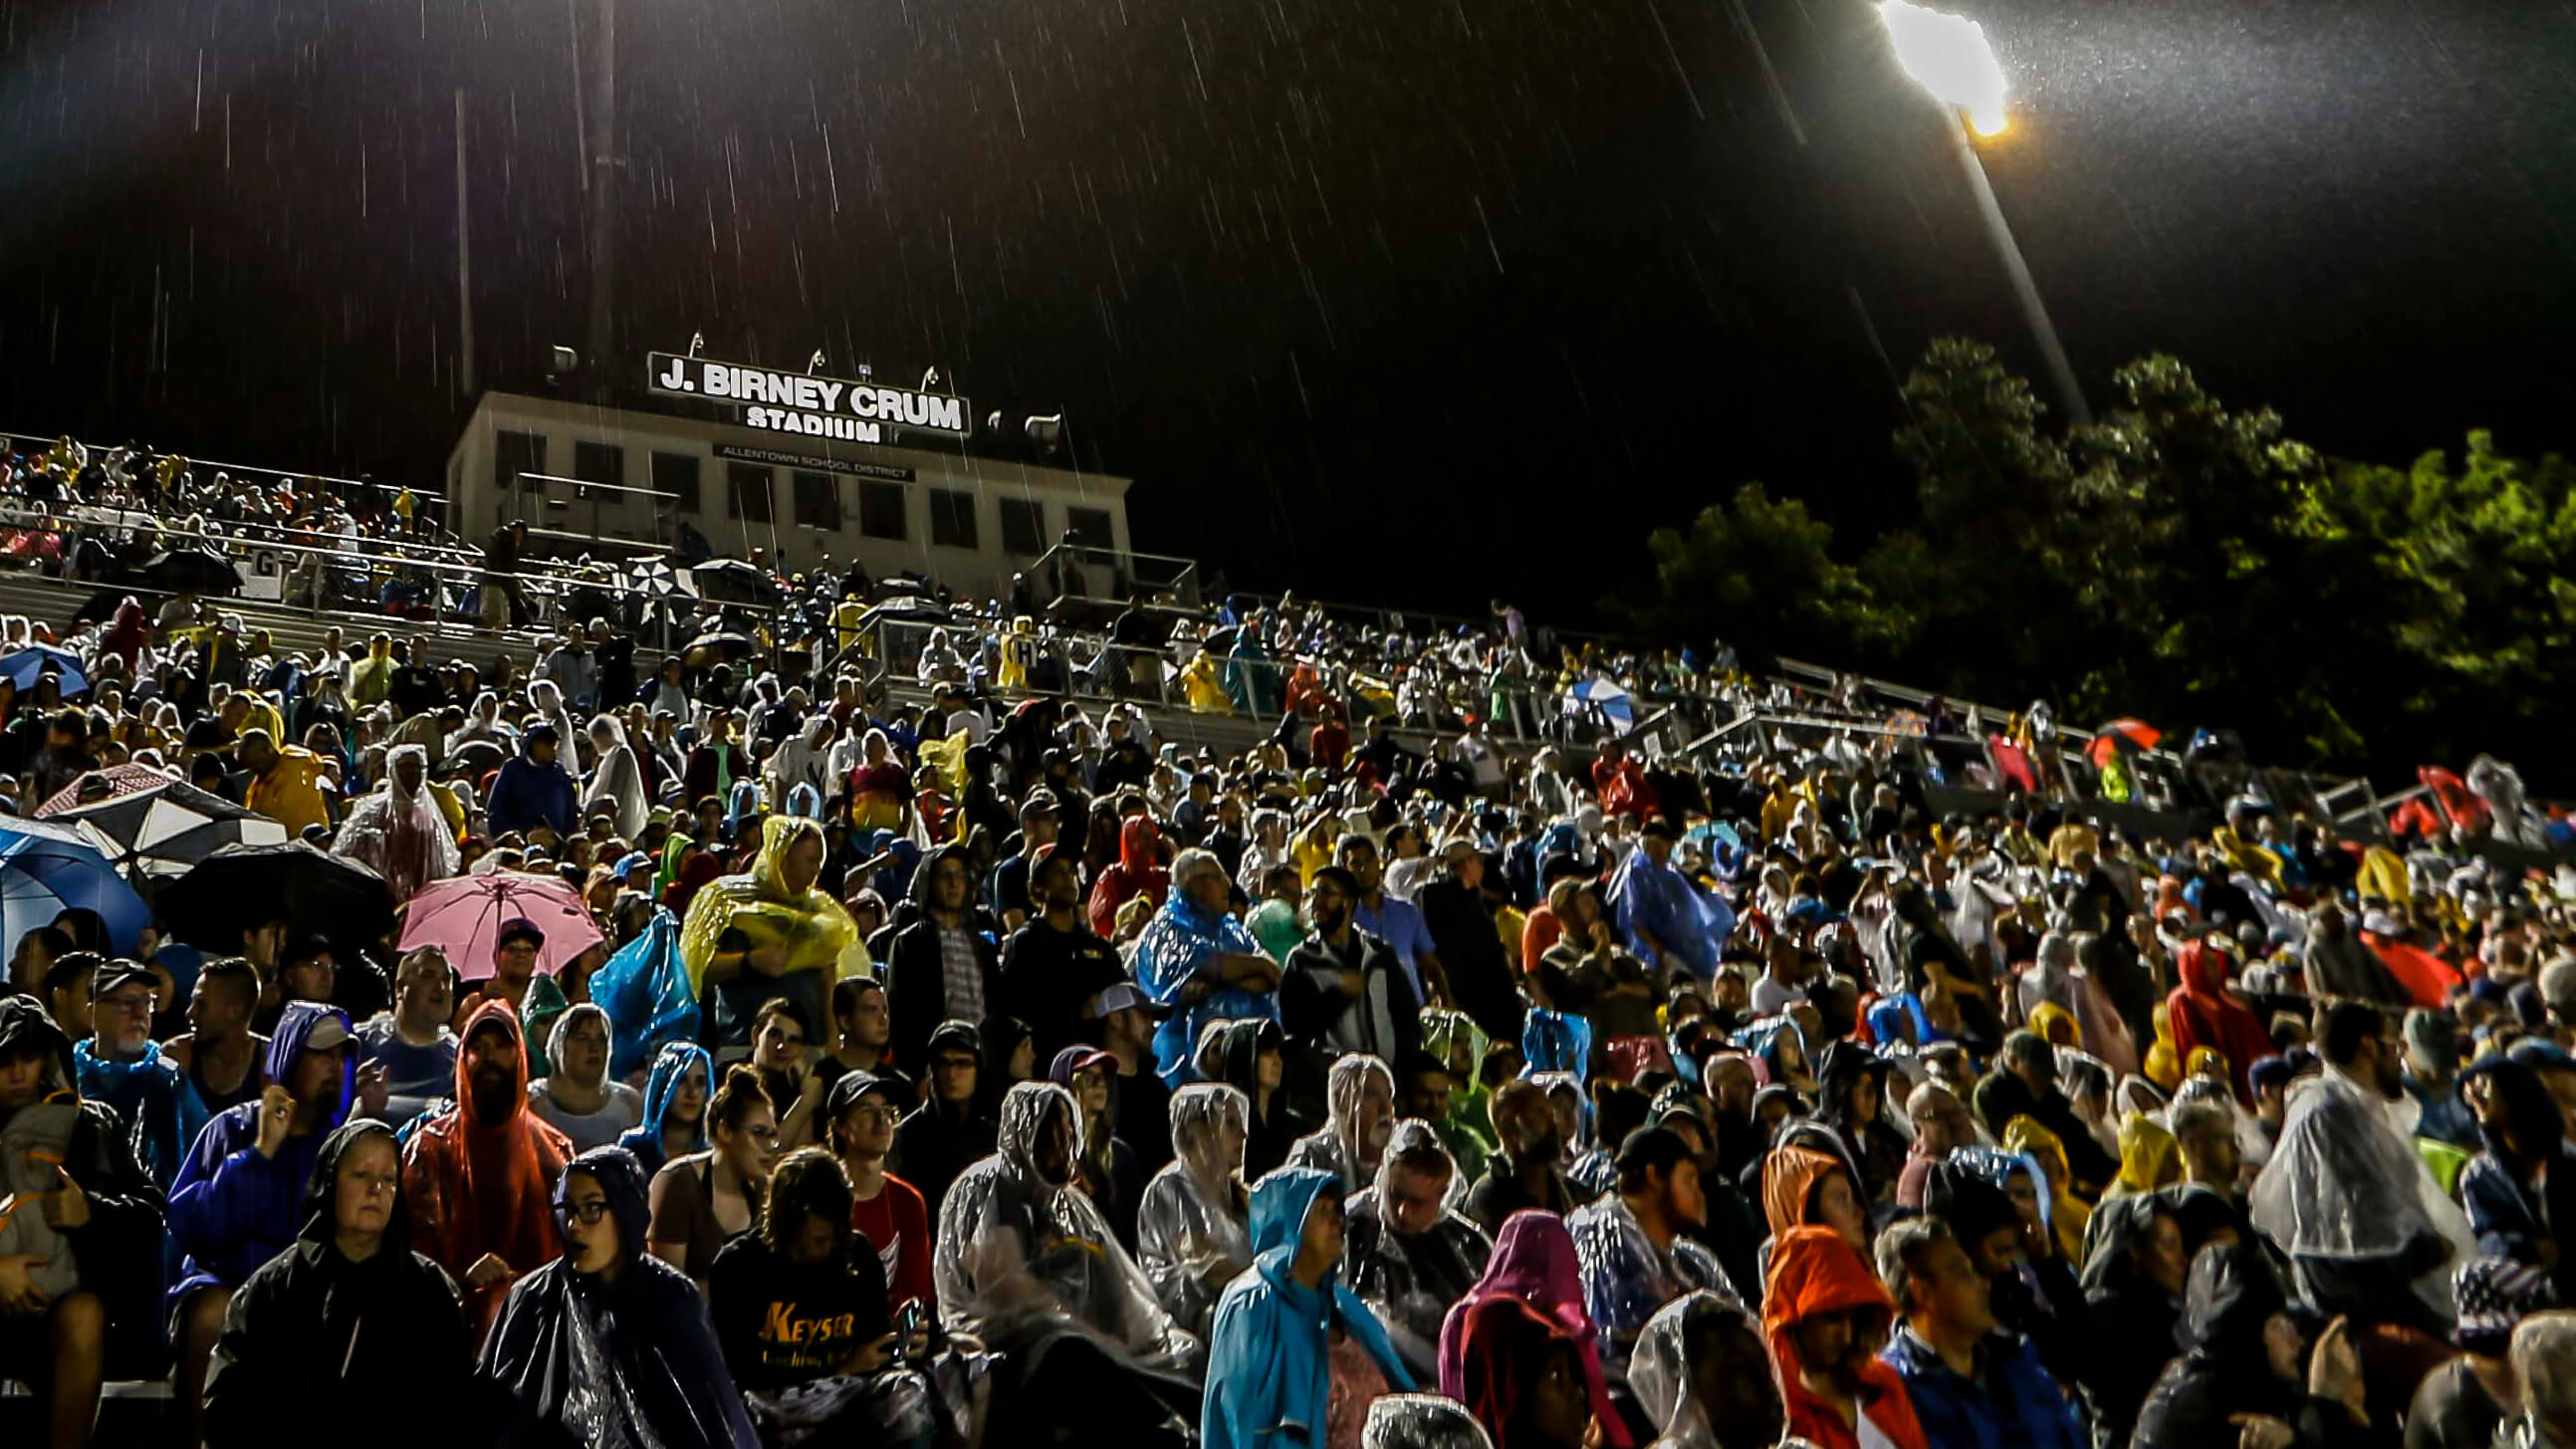 Inclement weather cuts first day of DCI Eastern Classic short